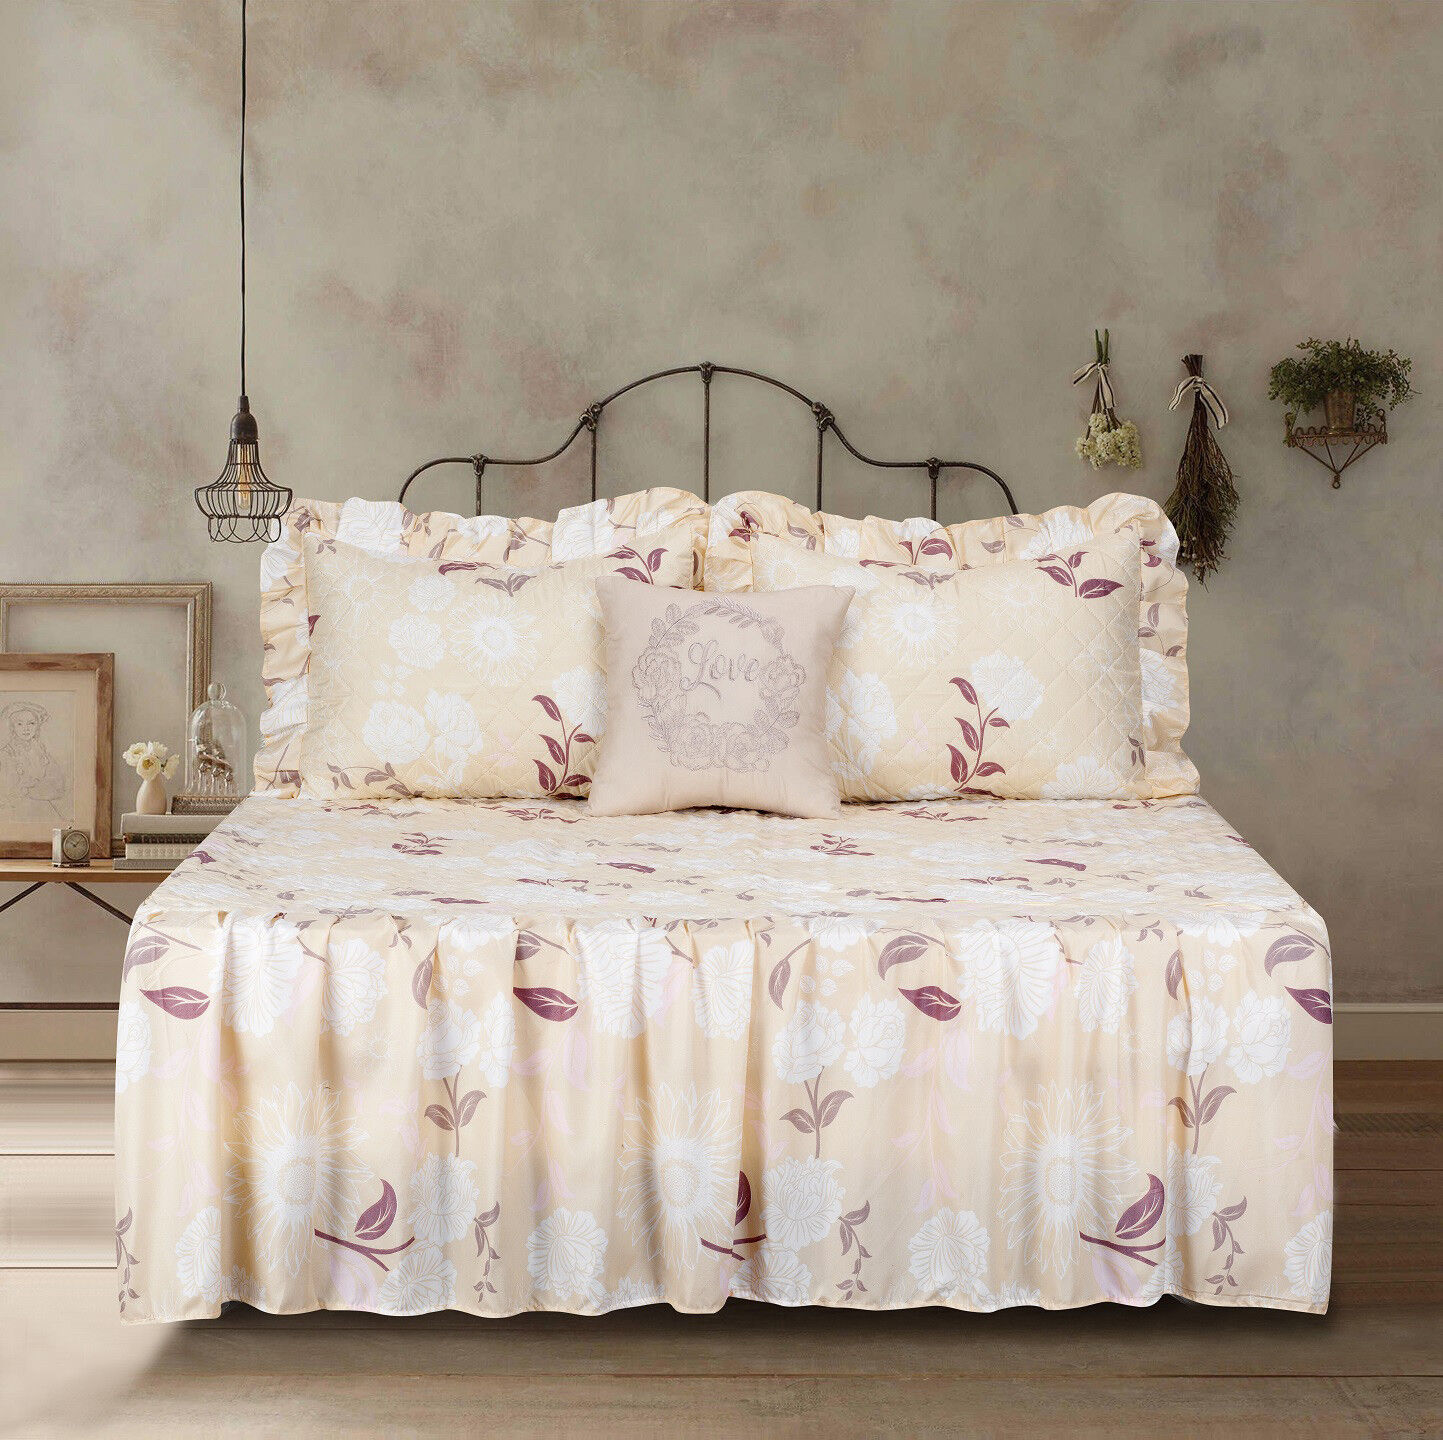 Twin Full Queen or King Quilt Floral Flowers Ruffle Bedspread Bedding Set Bedding